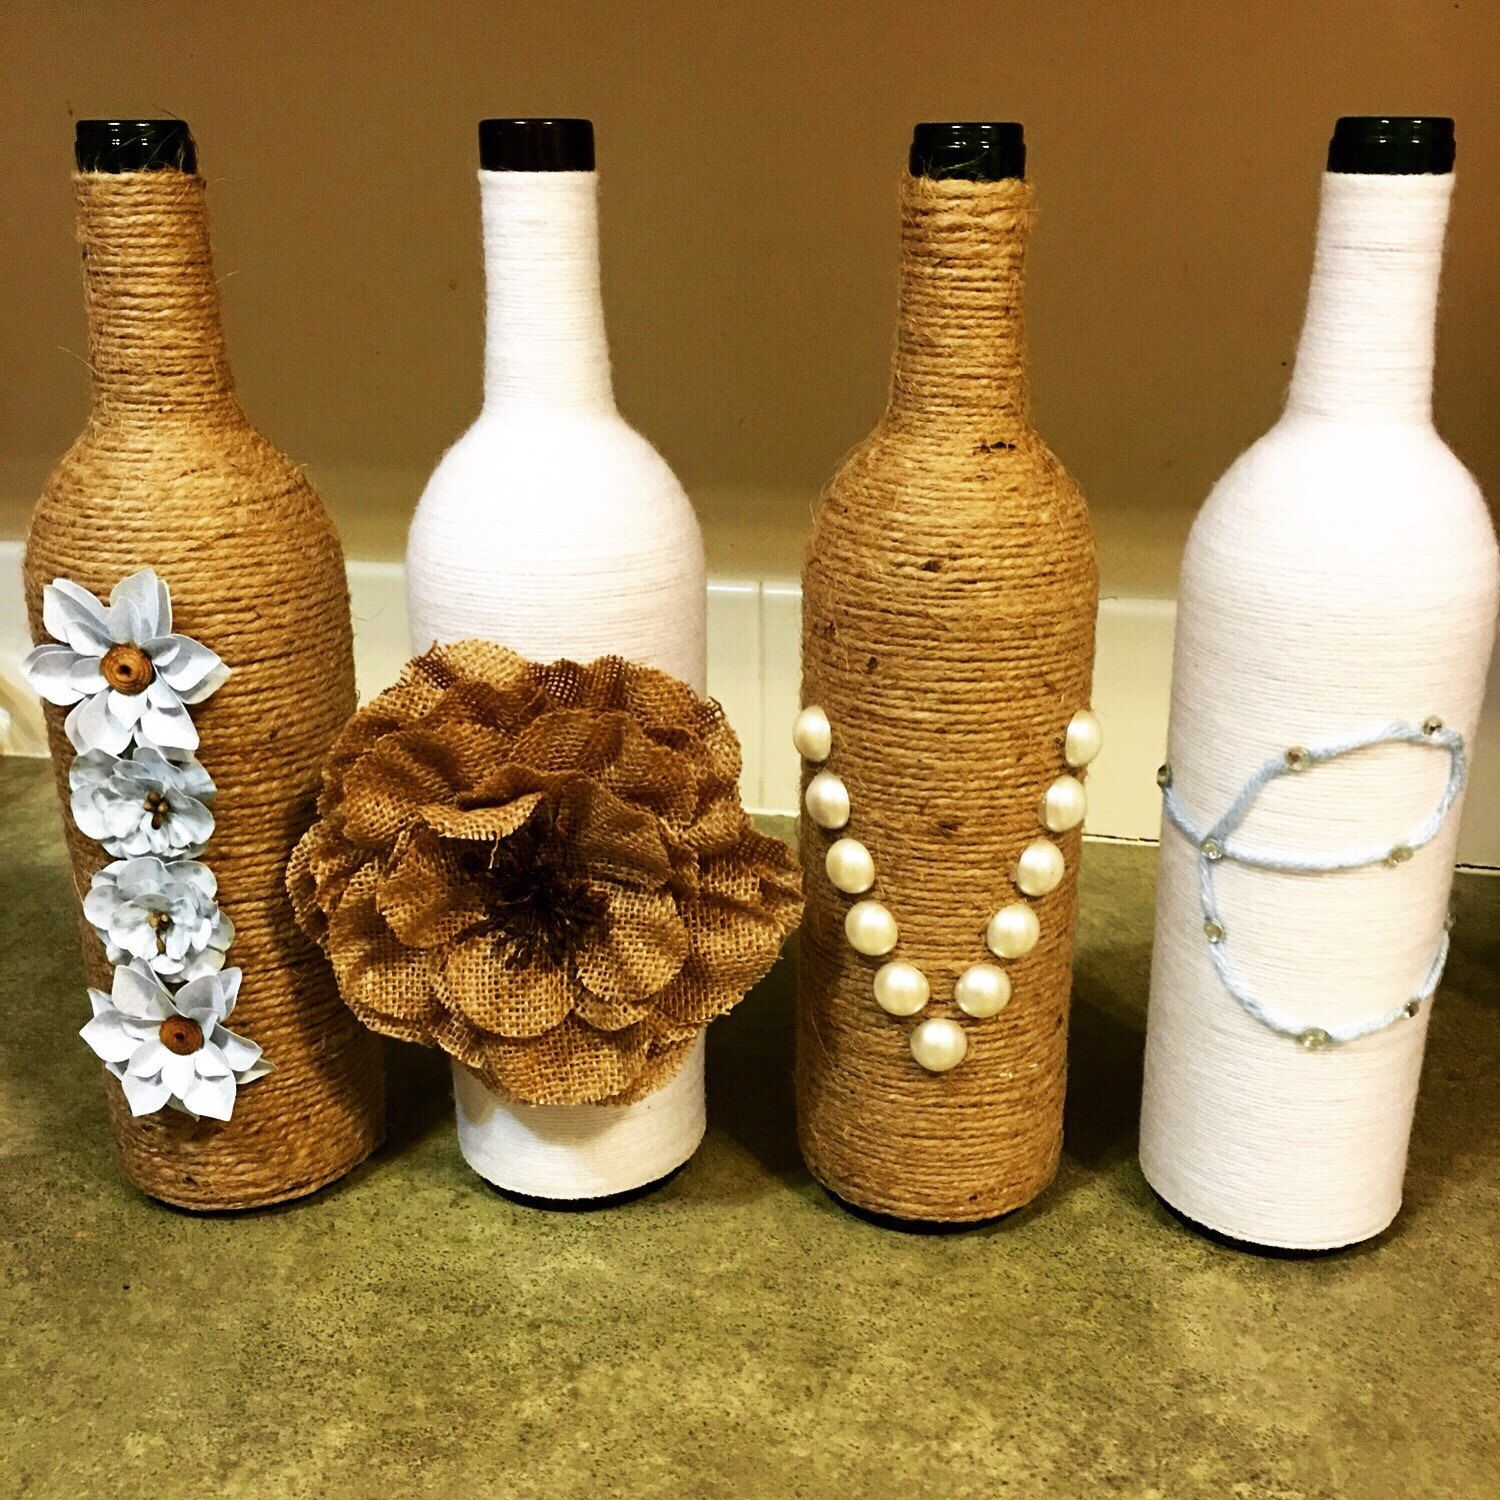 Wine Bottle Decor Wine Bottle Decor Rustic Decor Farmhouse Decor Country Decor